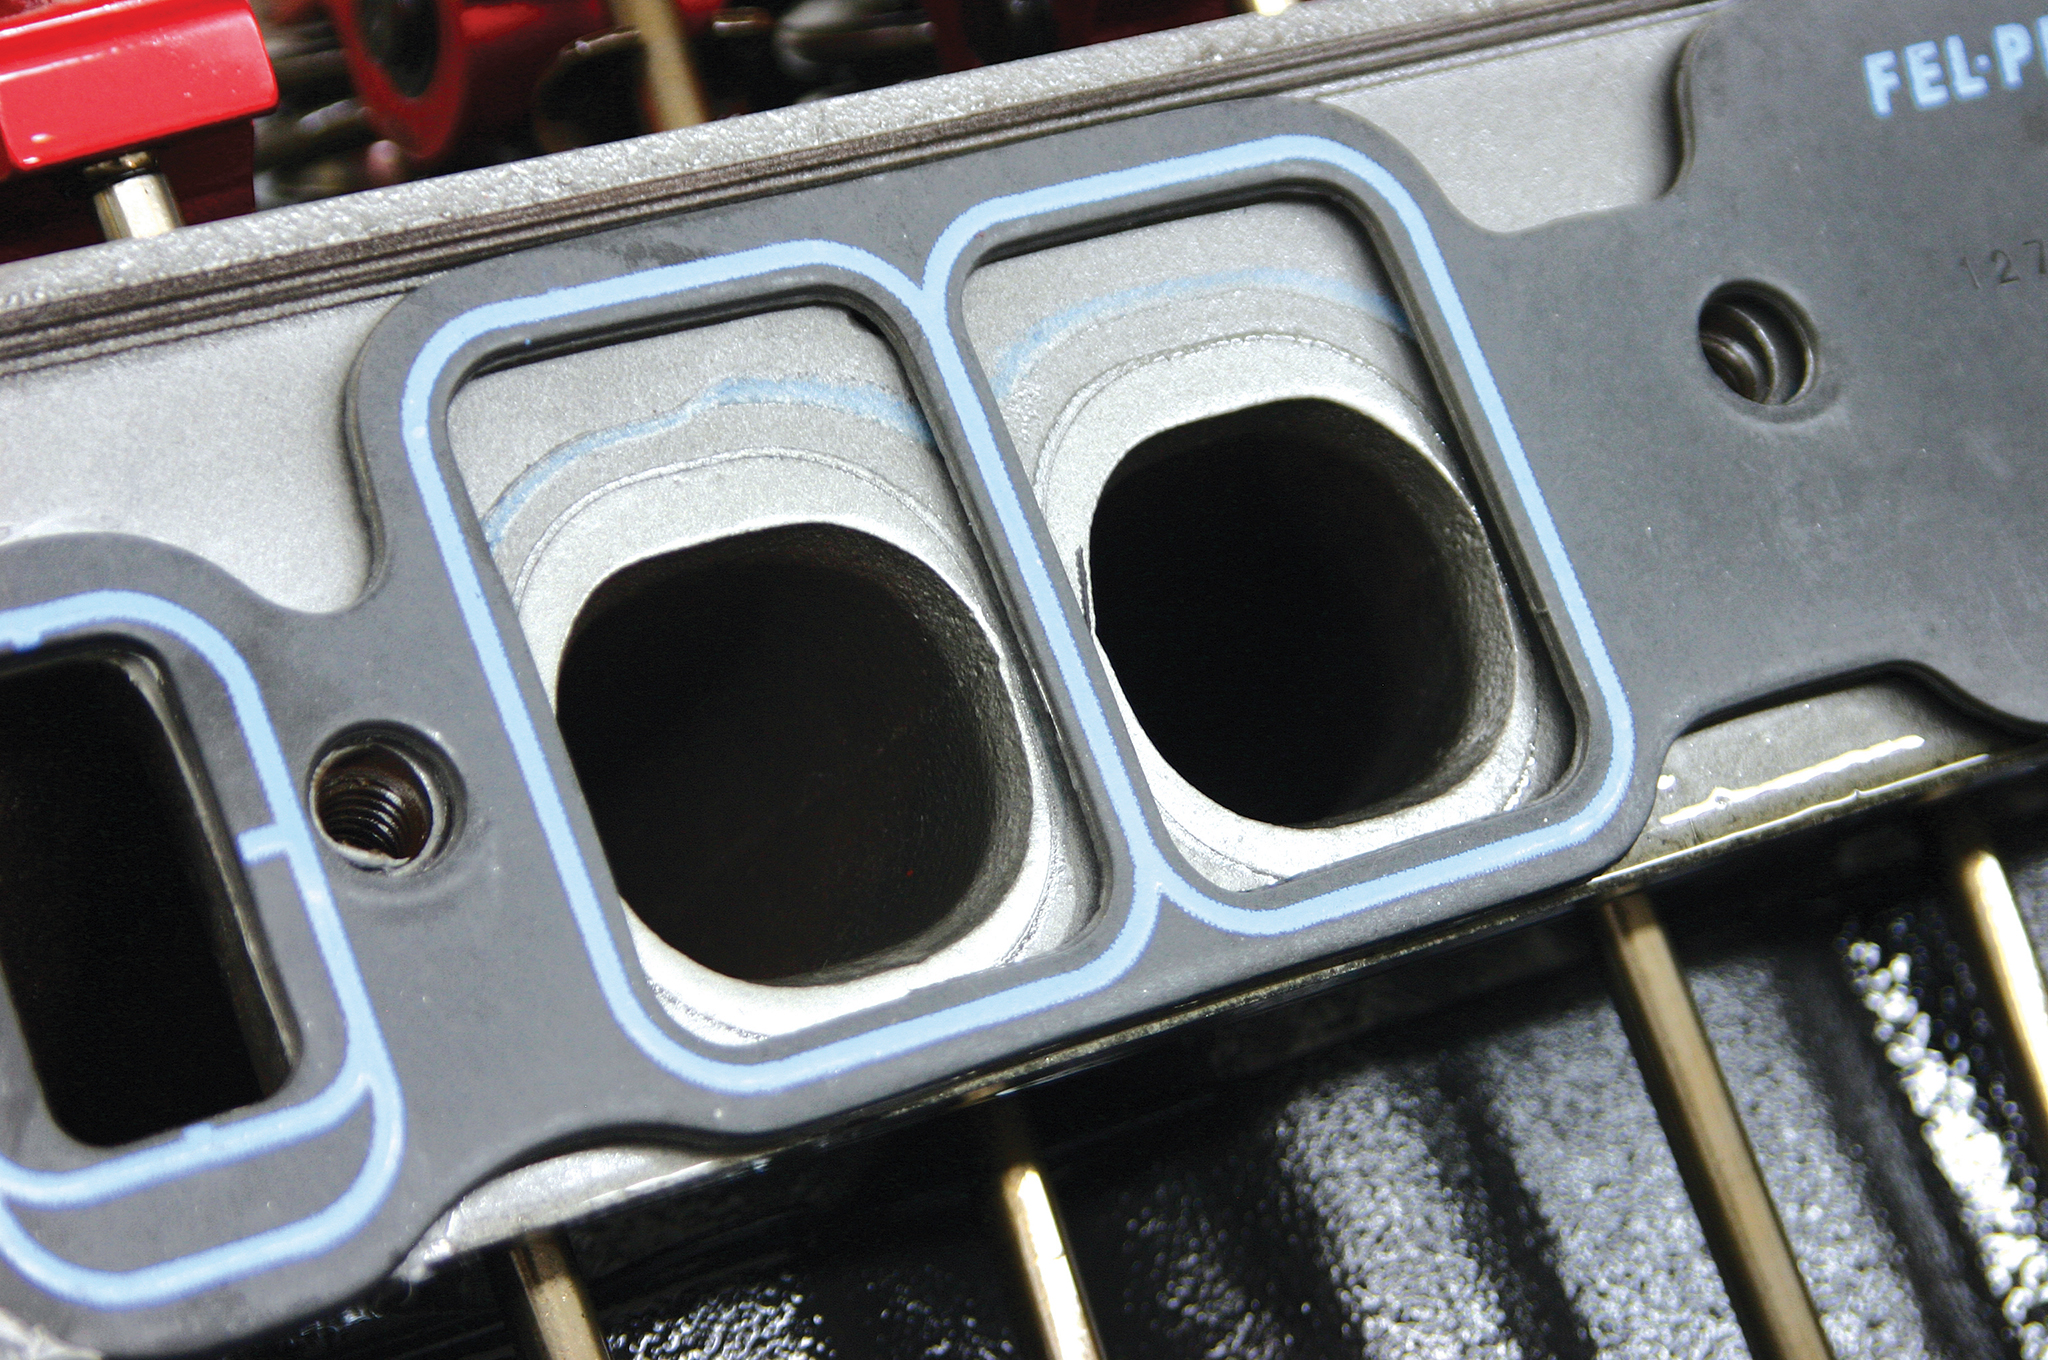 This picture illustrates the difference in port size between the so-called peanut-port big-block Chevy heads and the rectangle-port heads that were installed on performance engines. Oval-port castings have a port size somewhere in between the shape of these two.